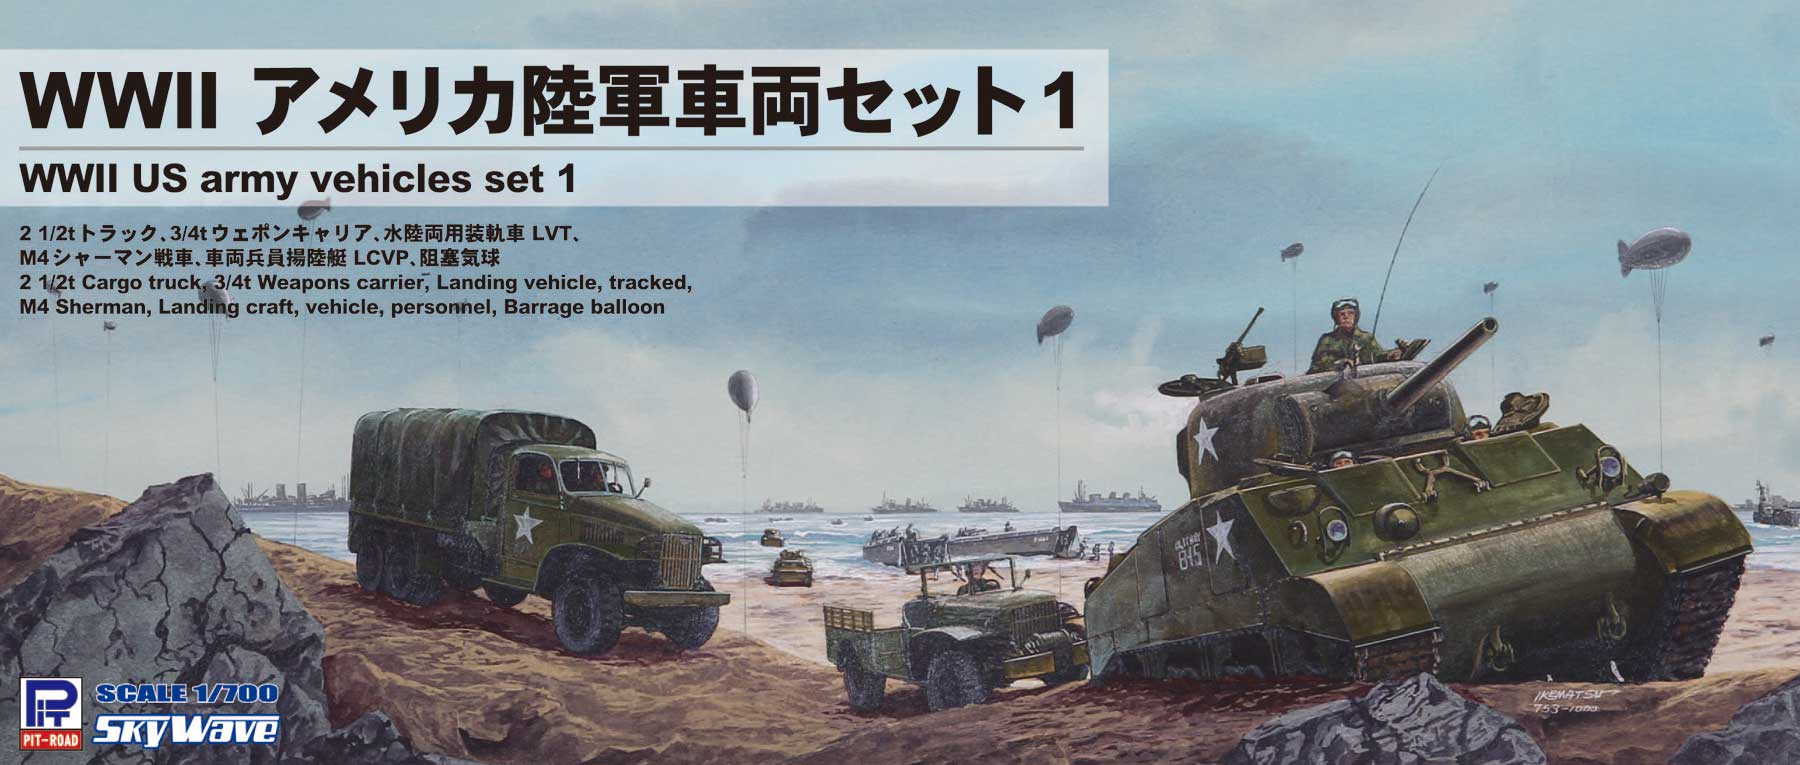 SW28 1/700 WWII アメリカ陸軍車両セット 1